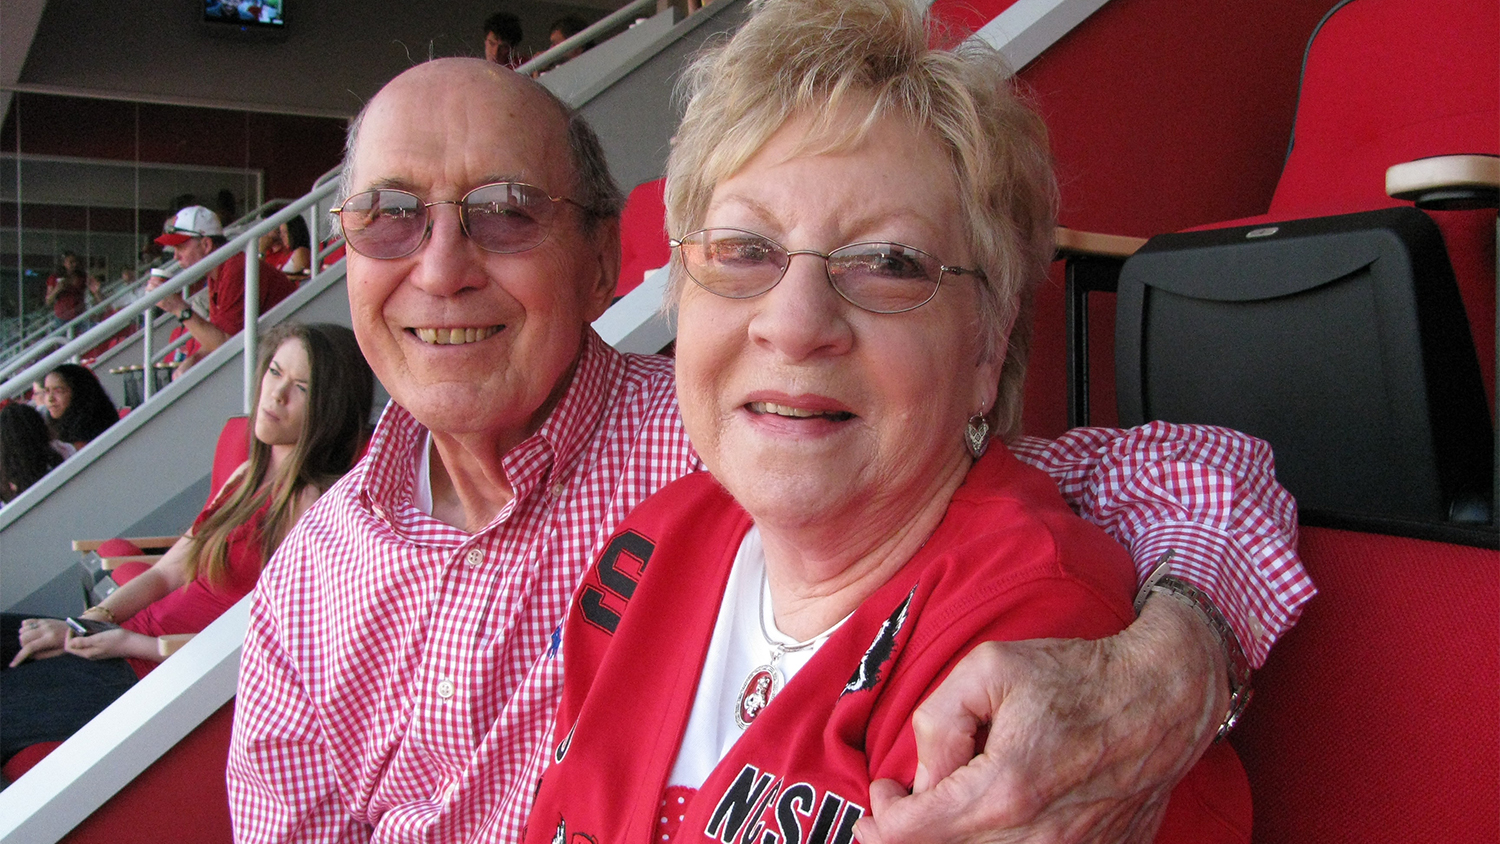 Curtis and Barbara Freeze in the stands at an NC State football game